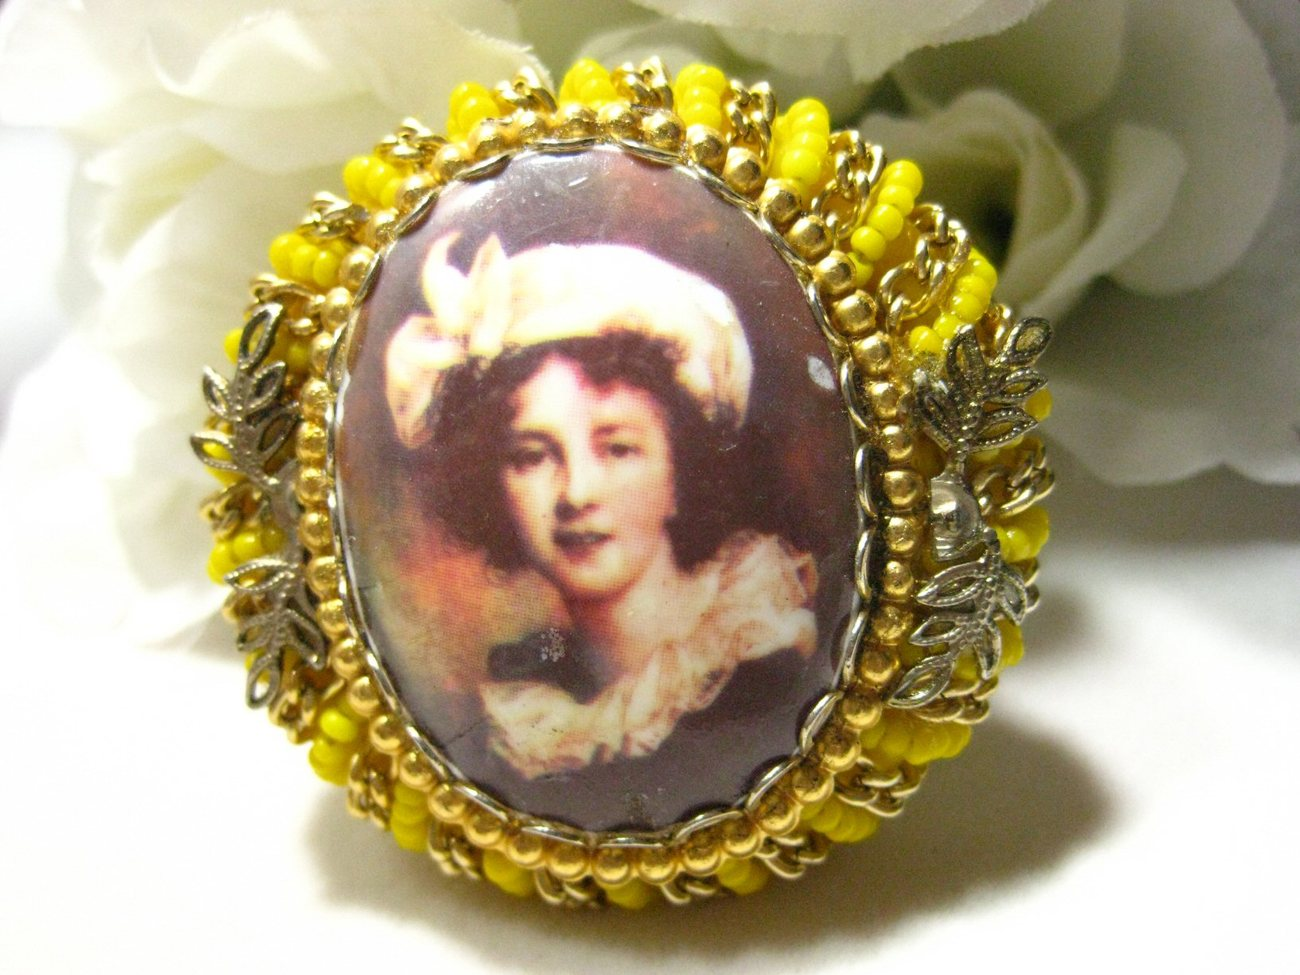 Vintage Beaded Porcelain Victorian Lady Portrait Brooch